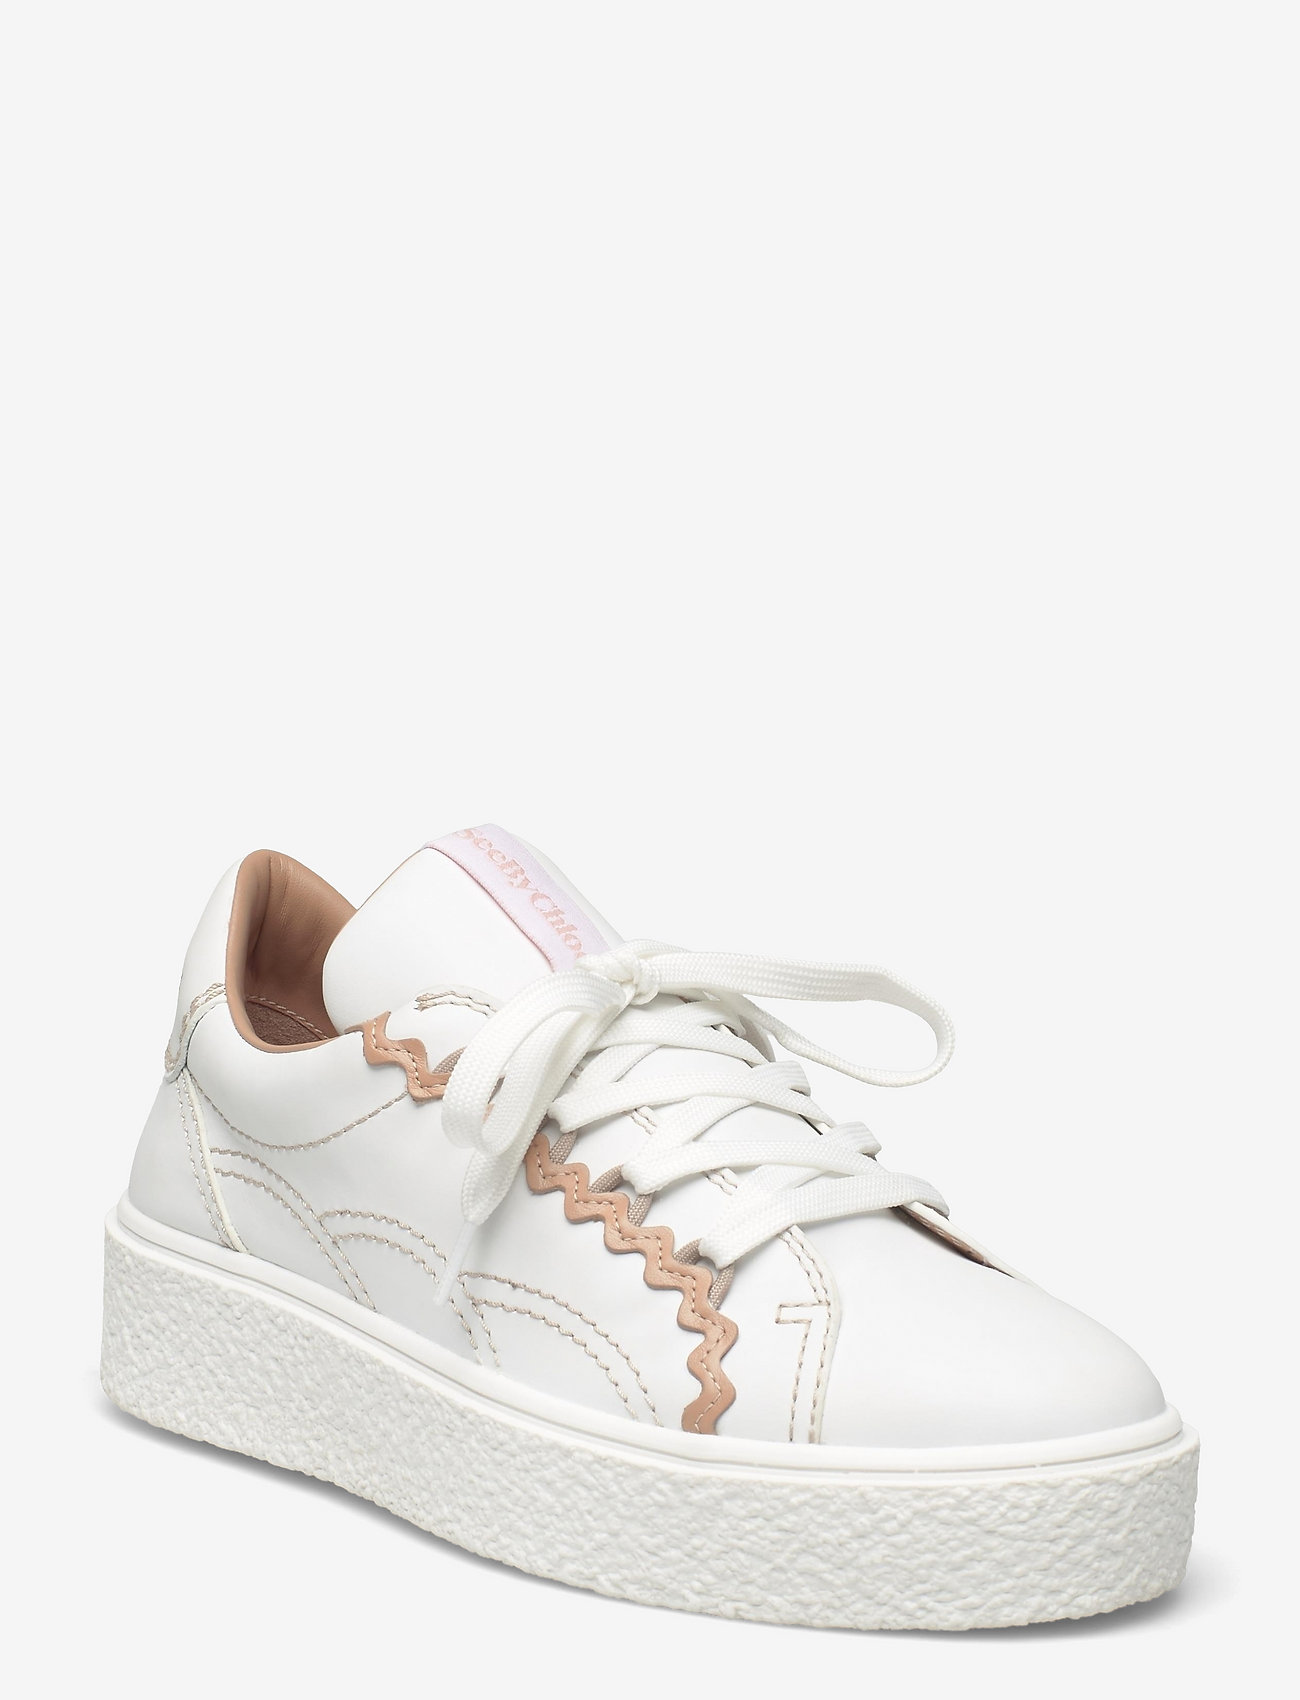 See by Chloé - LOW-TOP SNEAKERS - lage sneakers - white - nude - 0